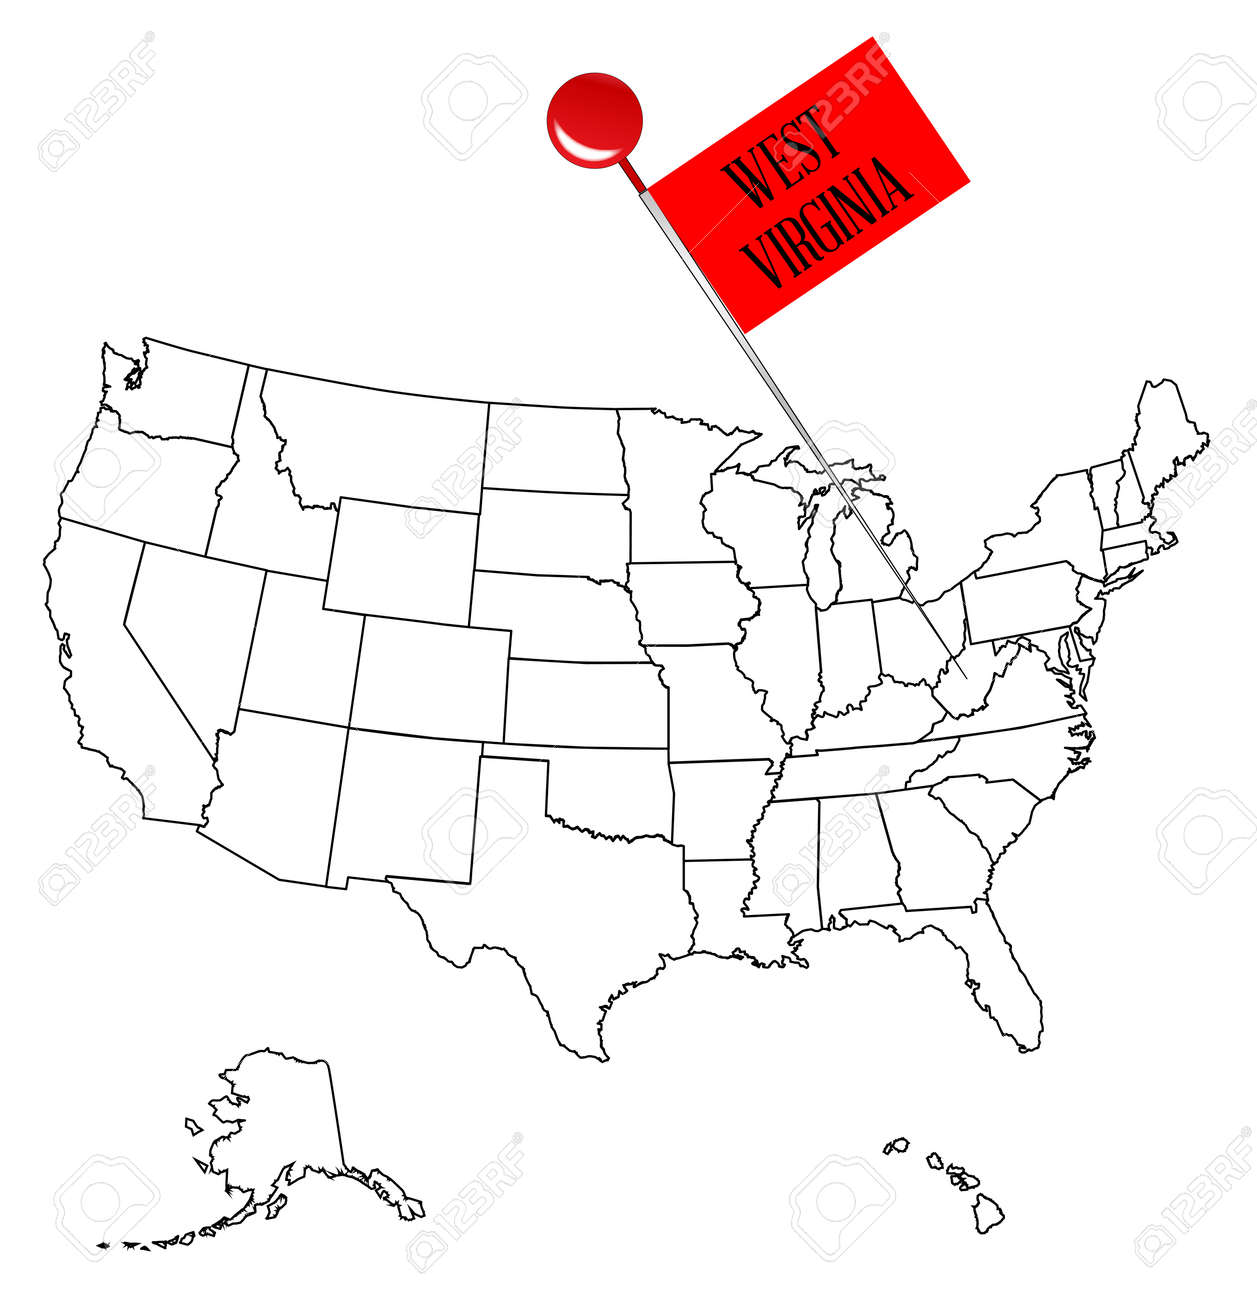 Outline Map Of Virginia.An Outline Map Of Usa With A Knob Pin In The State Of West Virginia